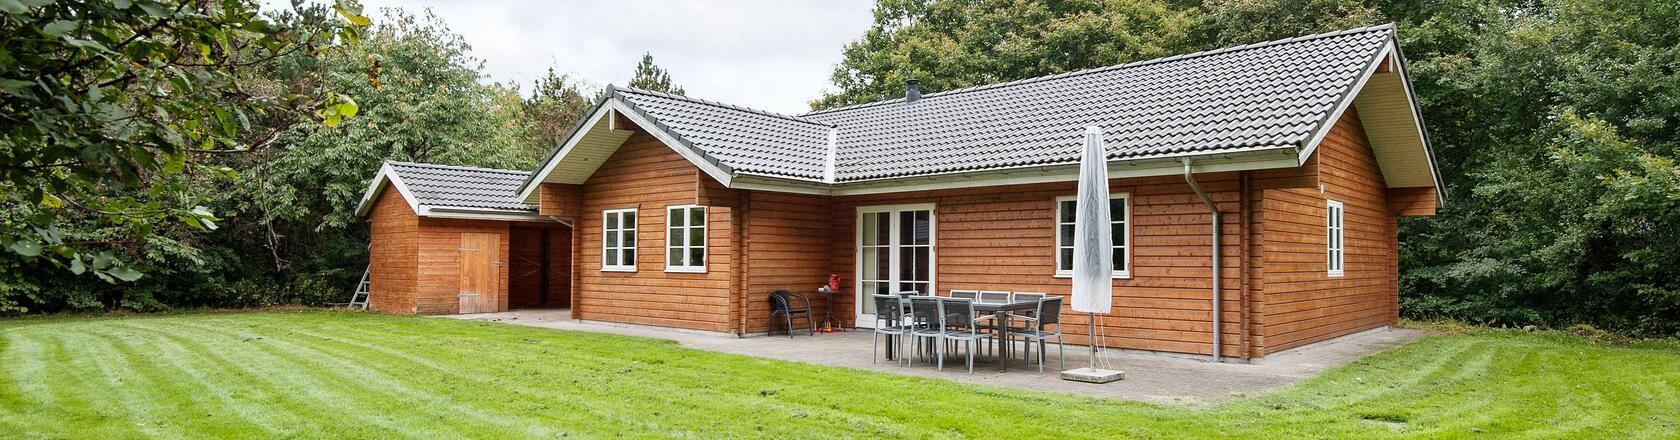 Arrild in Denmark - Rent a holiday home  with DanCenter